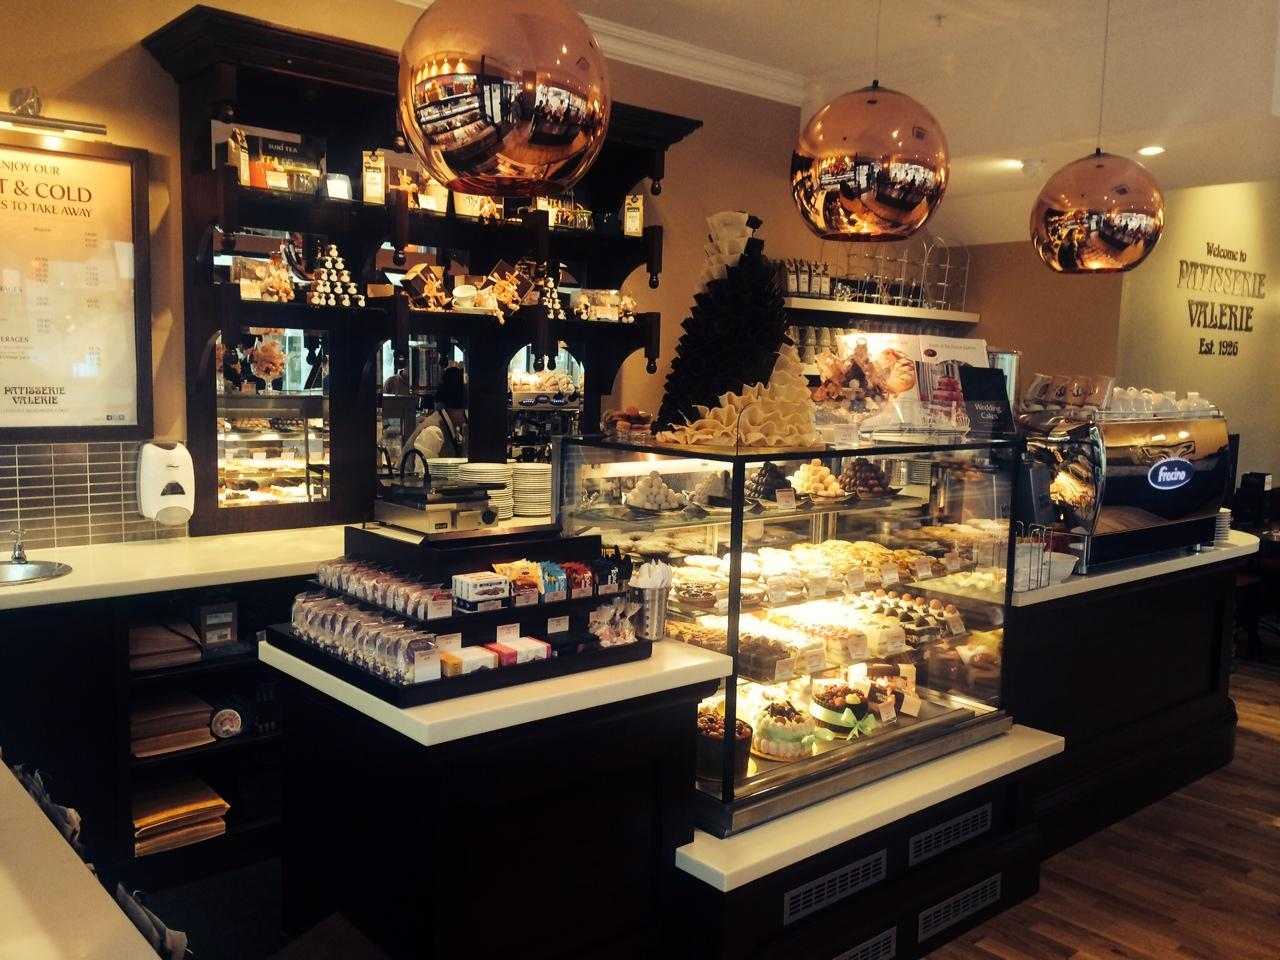 Patisserie Valerie - Bury St Edmunds - Suffolk